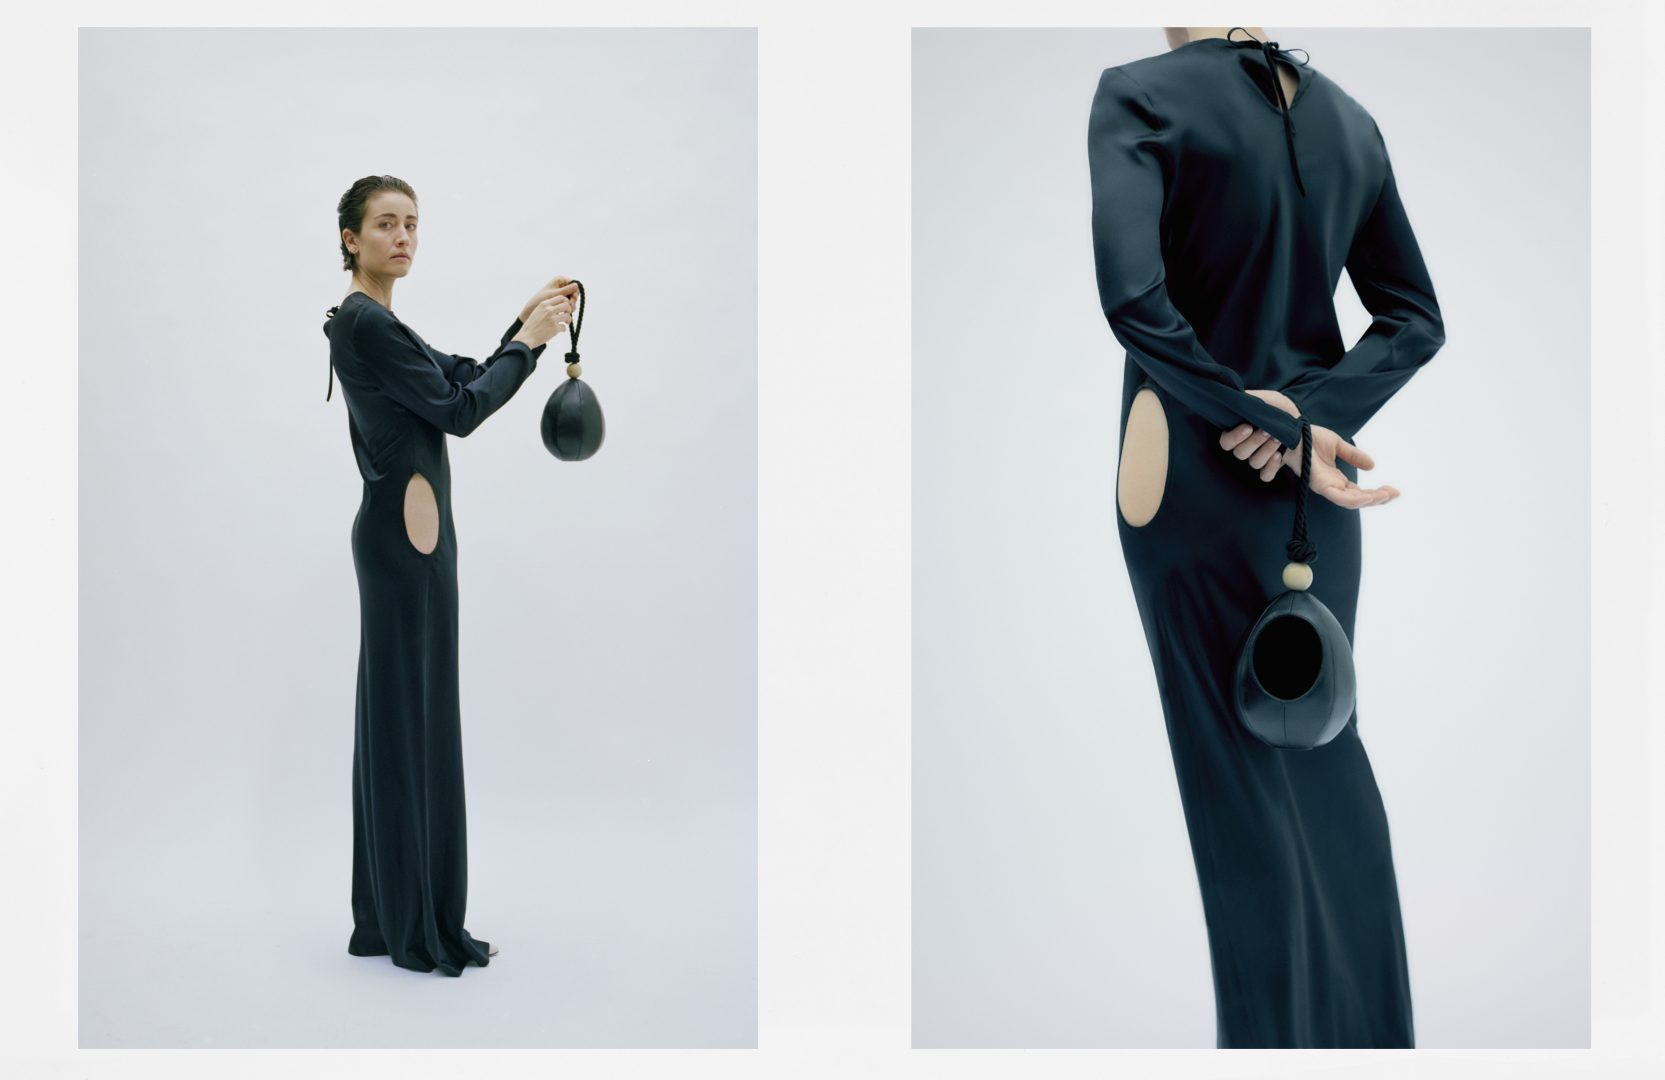 Cancellier Paris, Photographed by Umit Savaci, Styled by Sara Francia